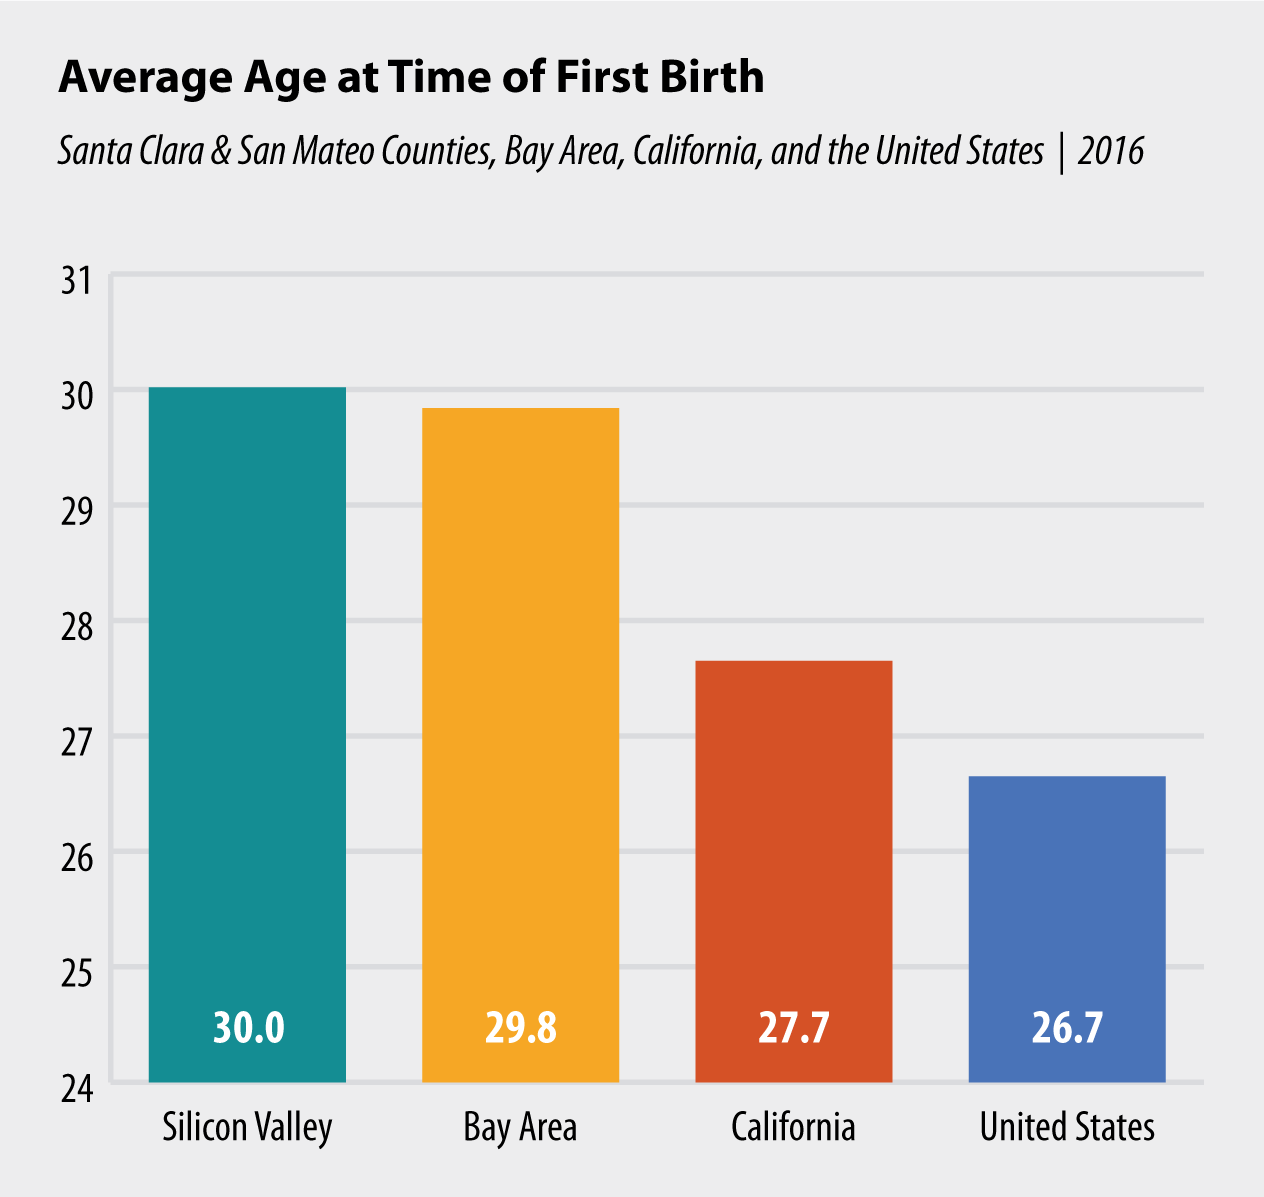 Average Age at Time of First Birth